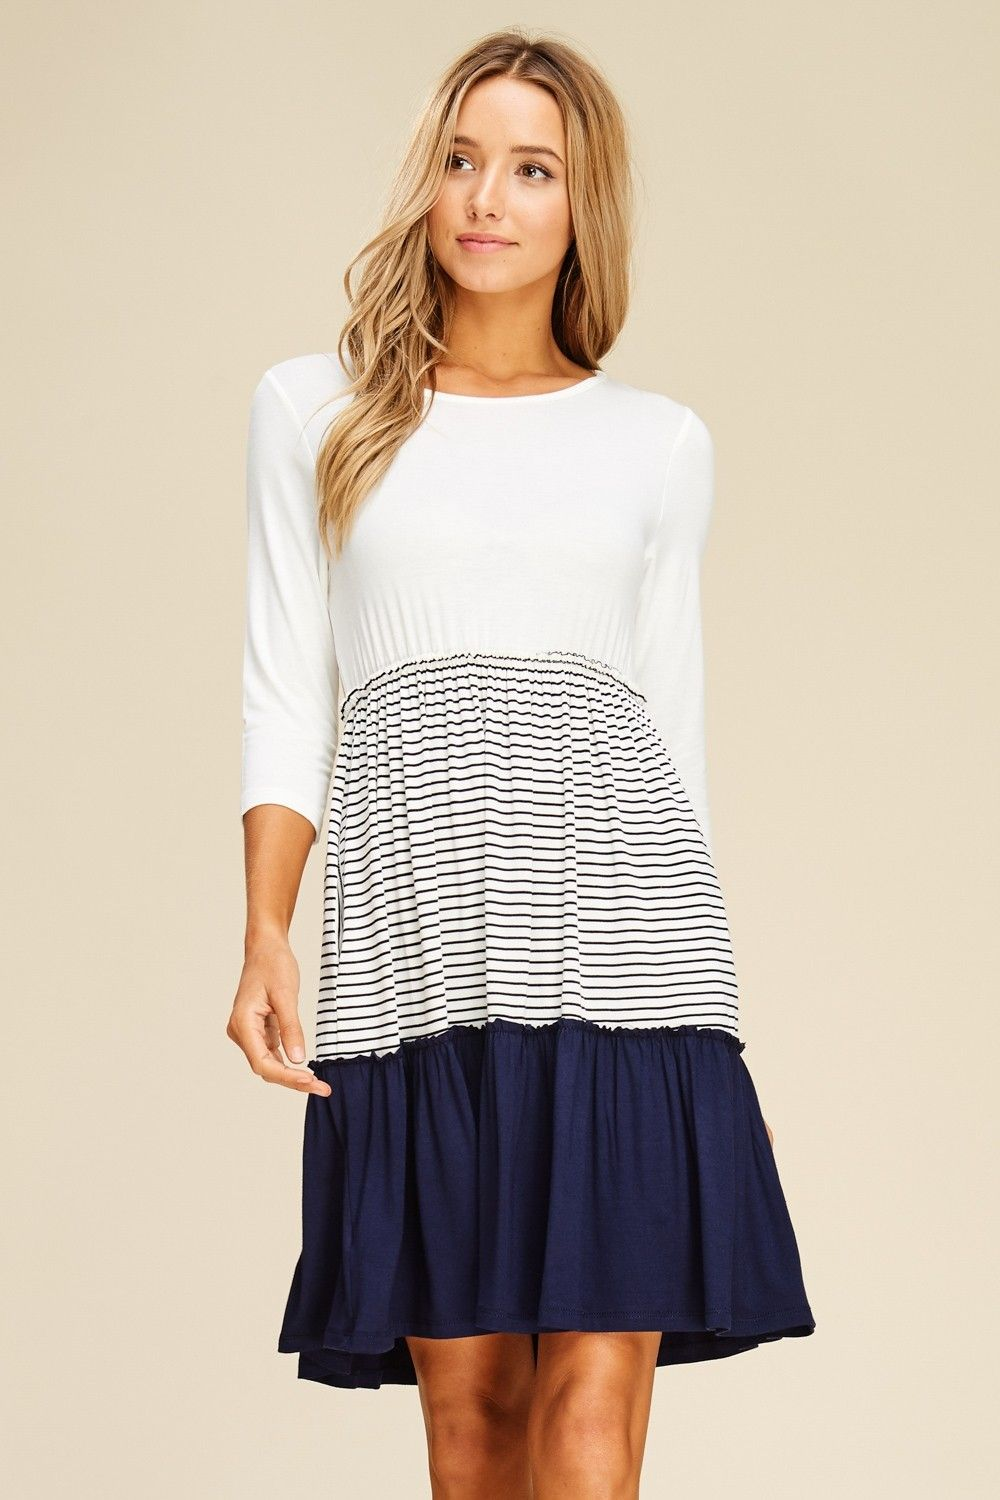 a8a41fac655 Stripe and Solid Contrast Midi Dress Style  D5392 Knit dress featuring  solid